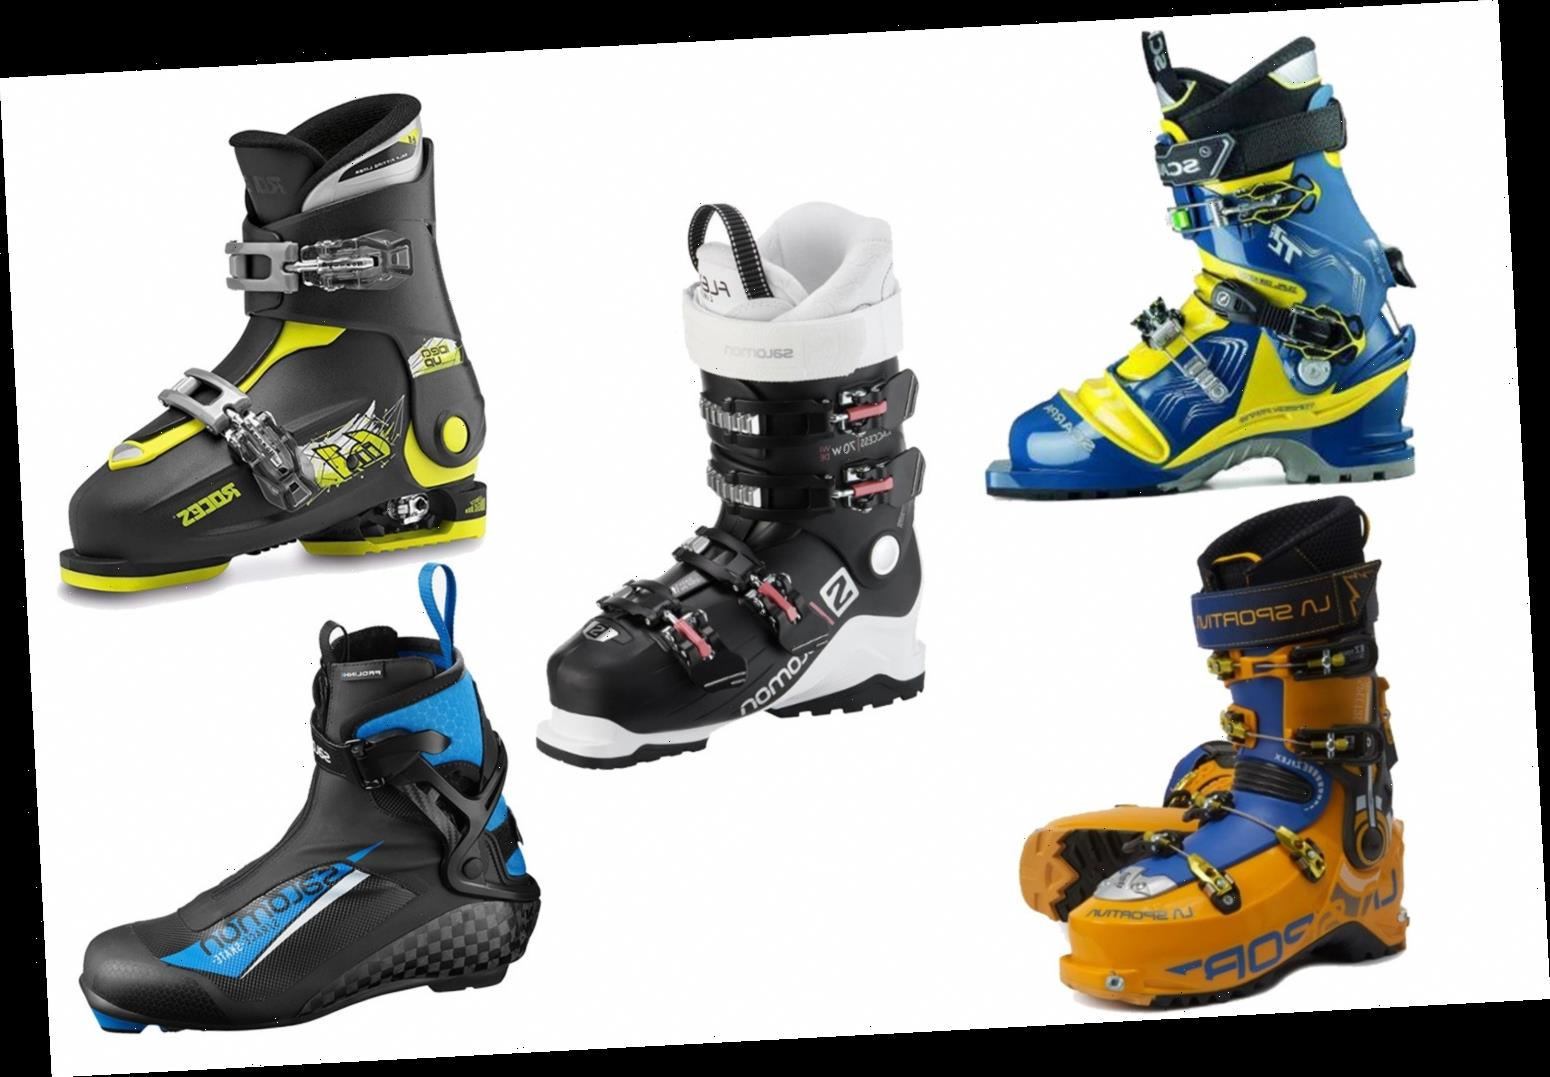 Best Ski Boots 2019 | The Sun UK